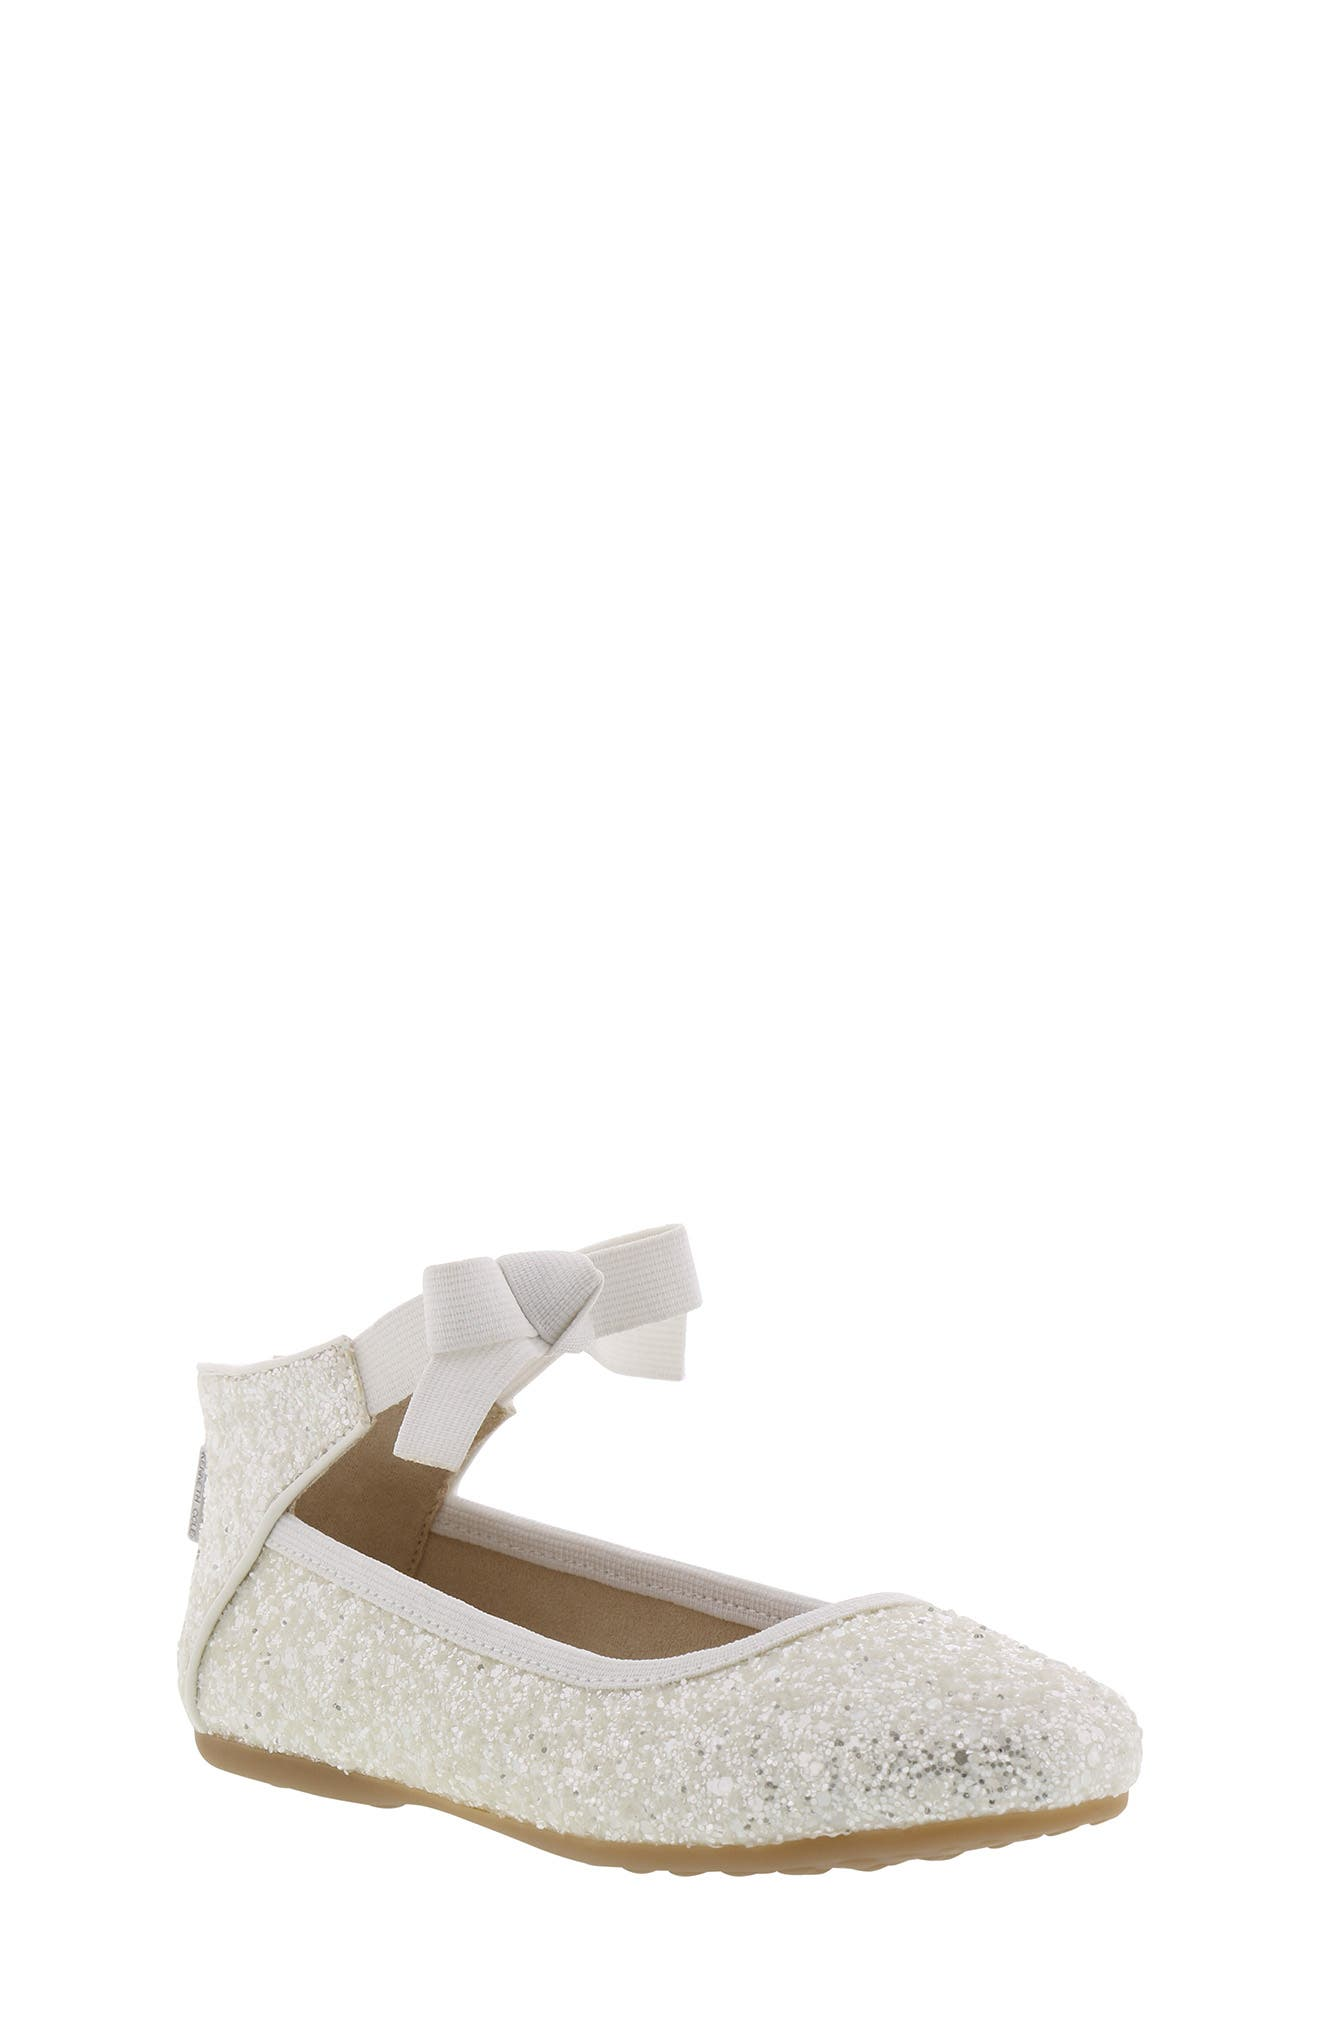 KENNETH COLE NEW YORK, Rose Bow Ballet Flat, Main thumbnail 1, color, WHITE SUGAR GLITTER